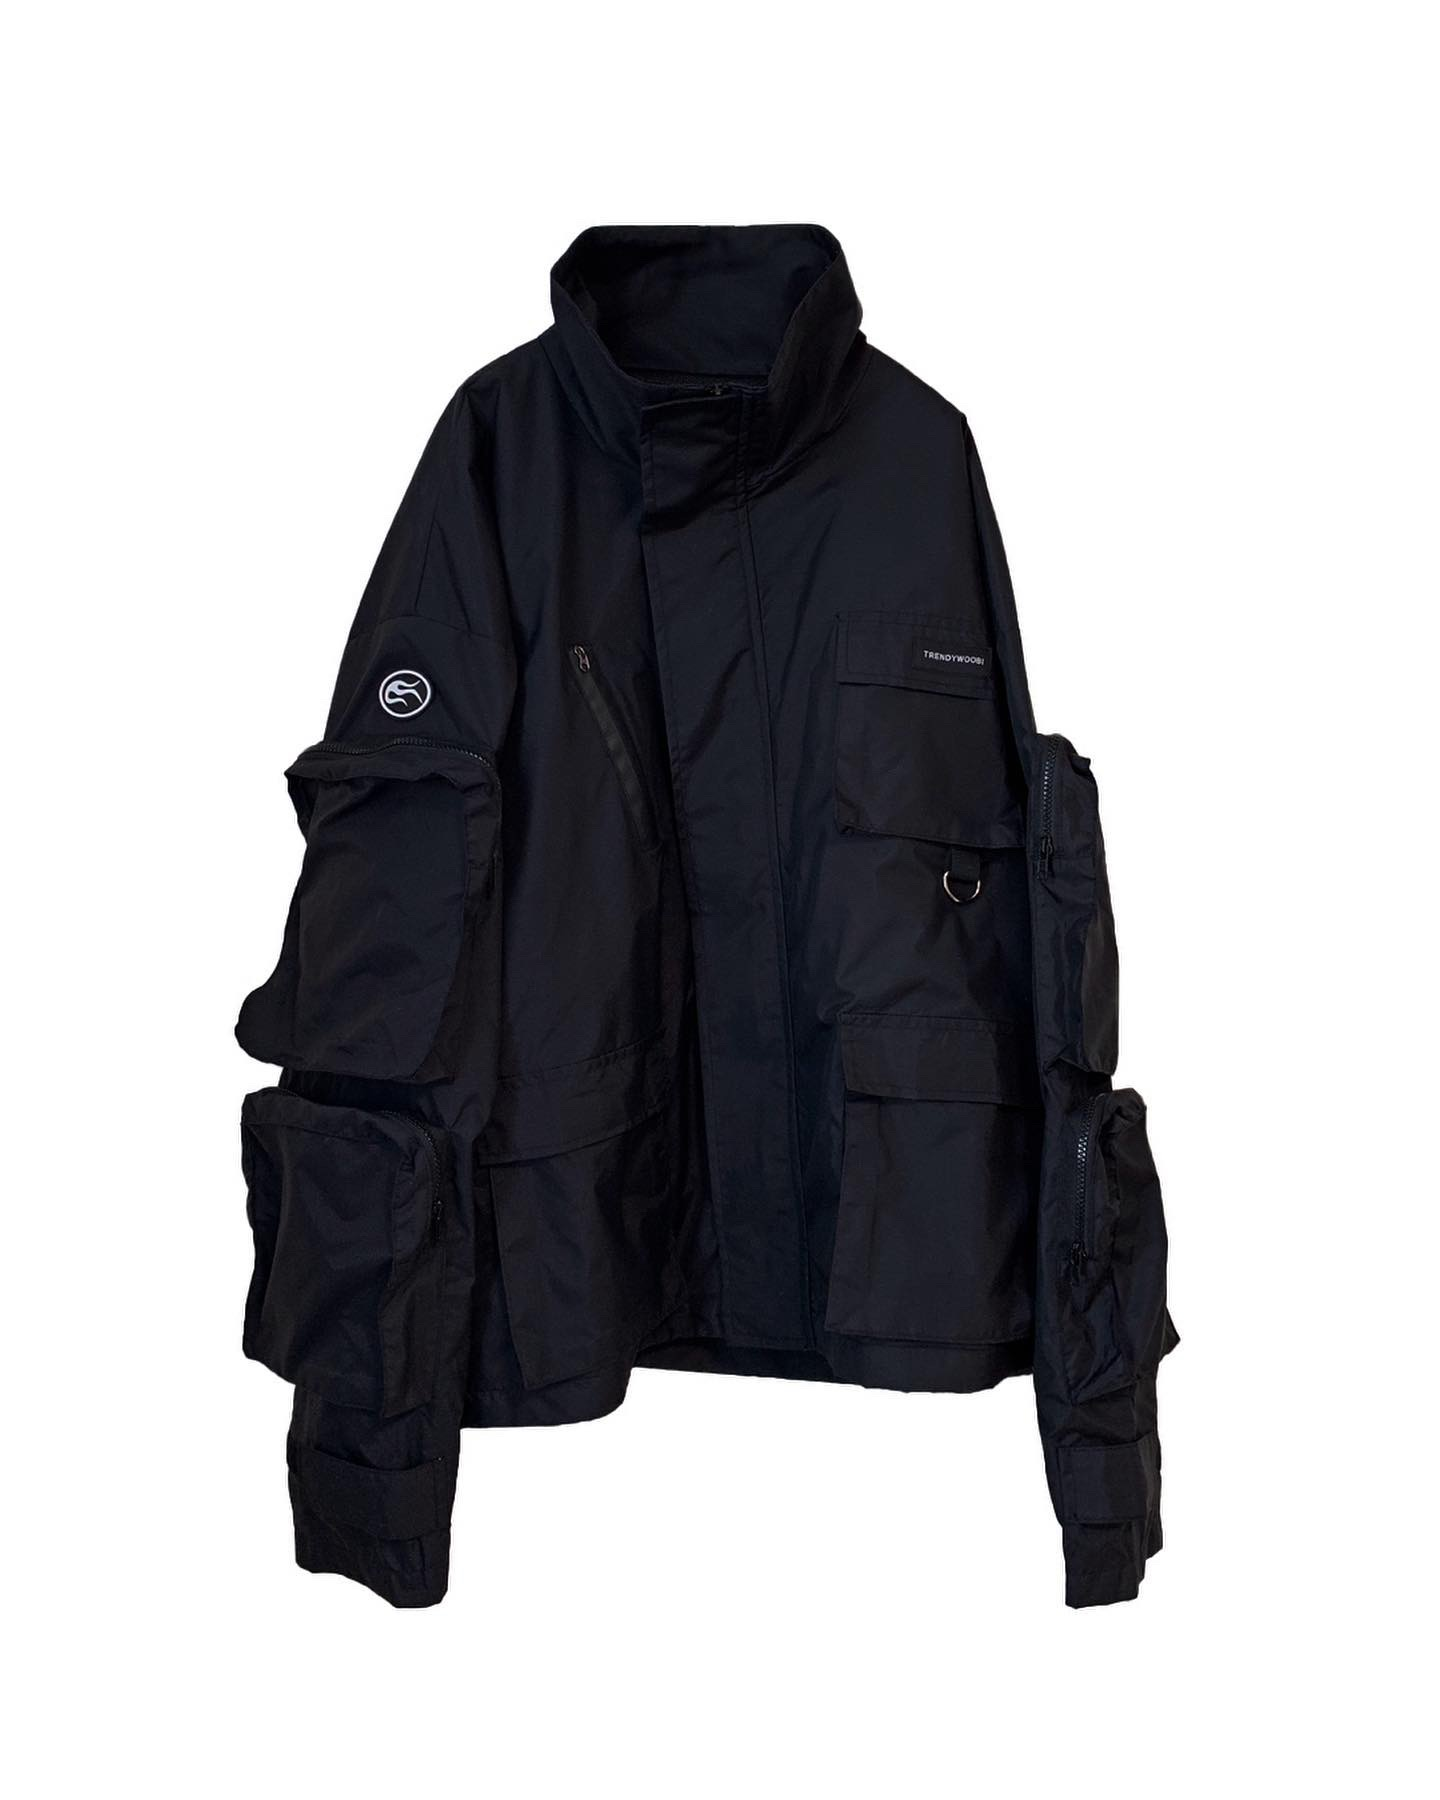 3d SIGNATURE Pocket Jacket